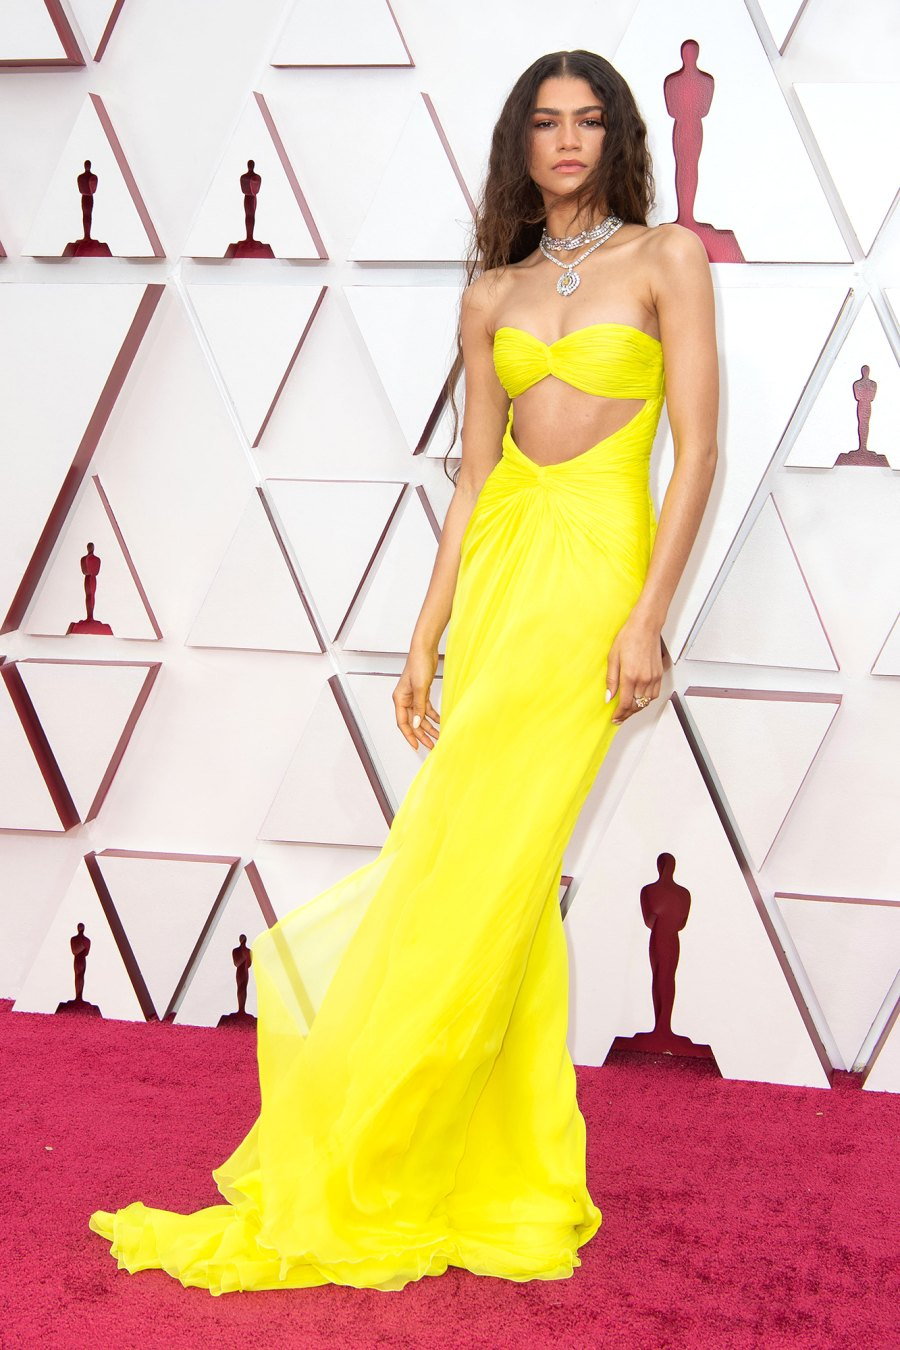 April 25 2021 Zendaya Best Fashion Moments Through the Years